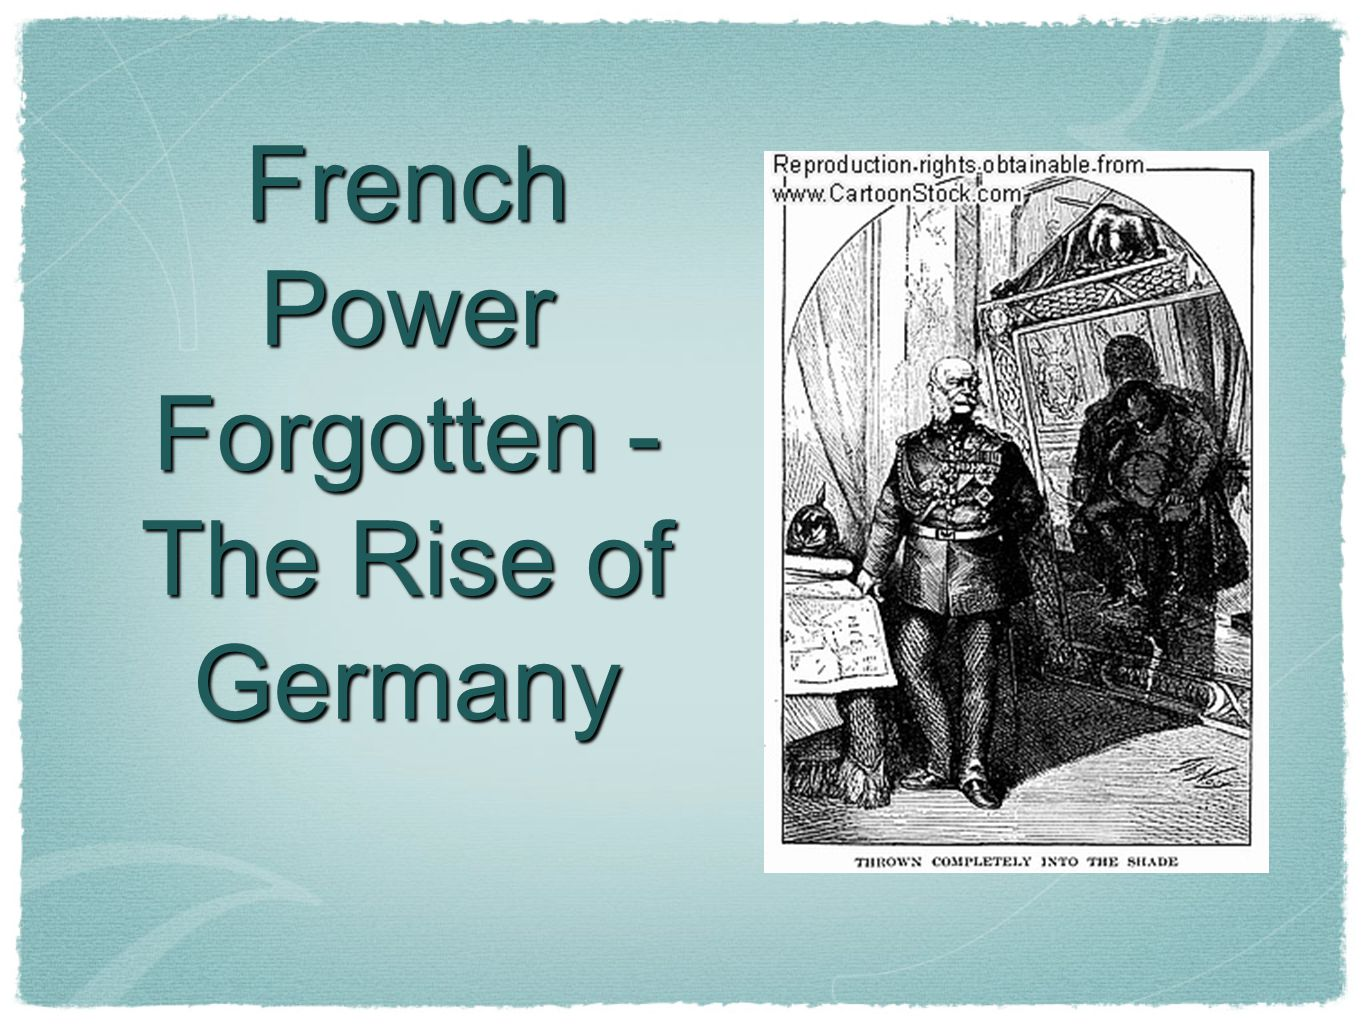 French Power Forgotten - The Rise of Germany